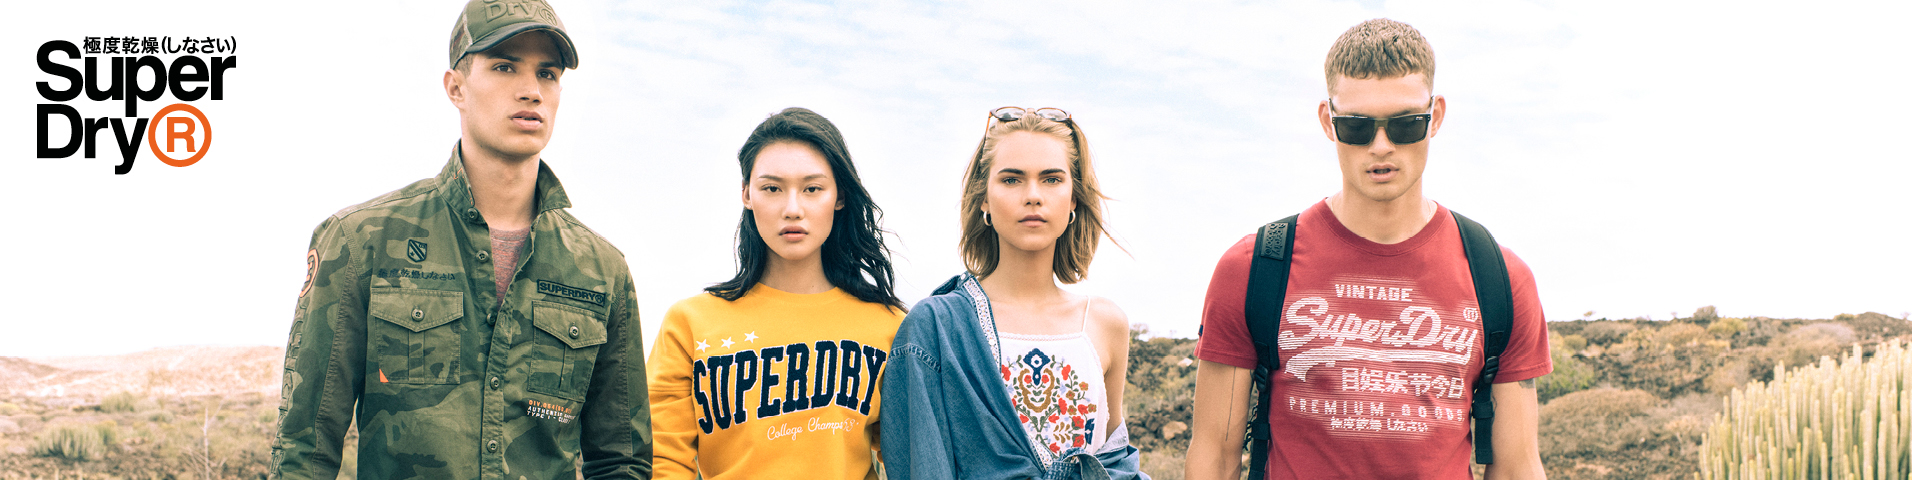 2fc1c30e4452 Catalogue de Superdry